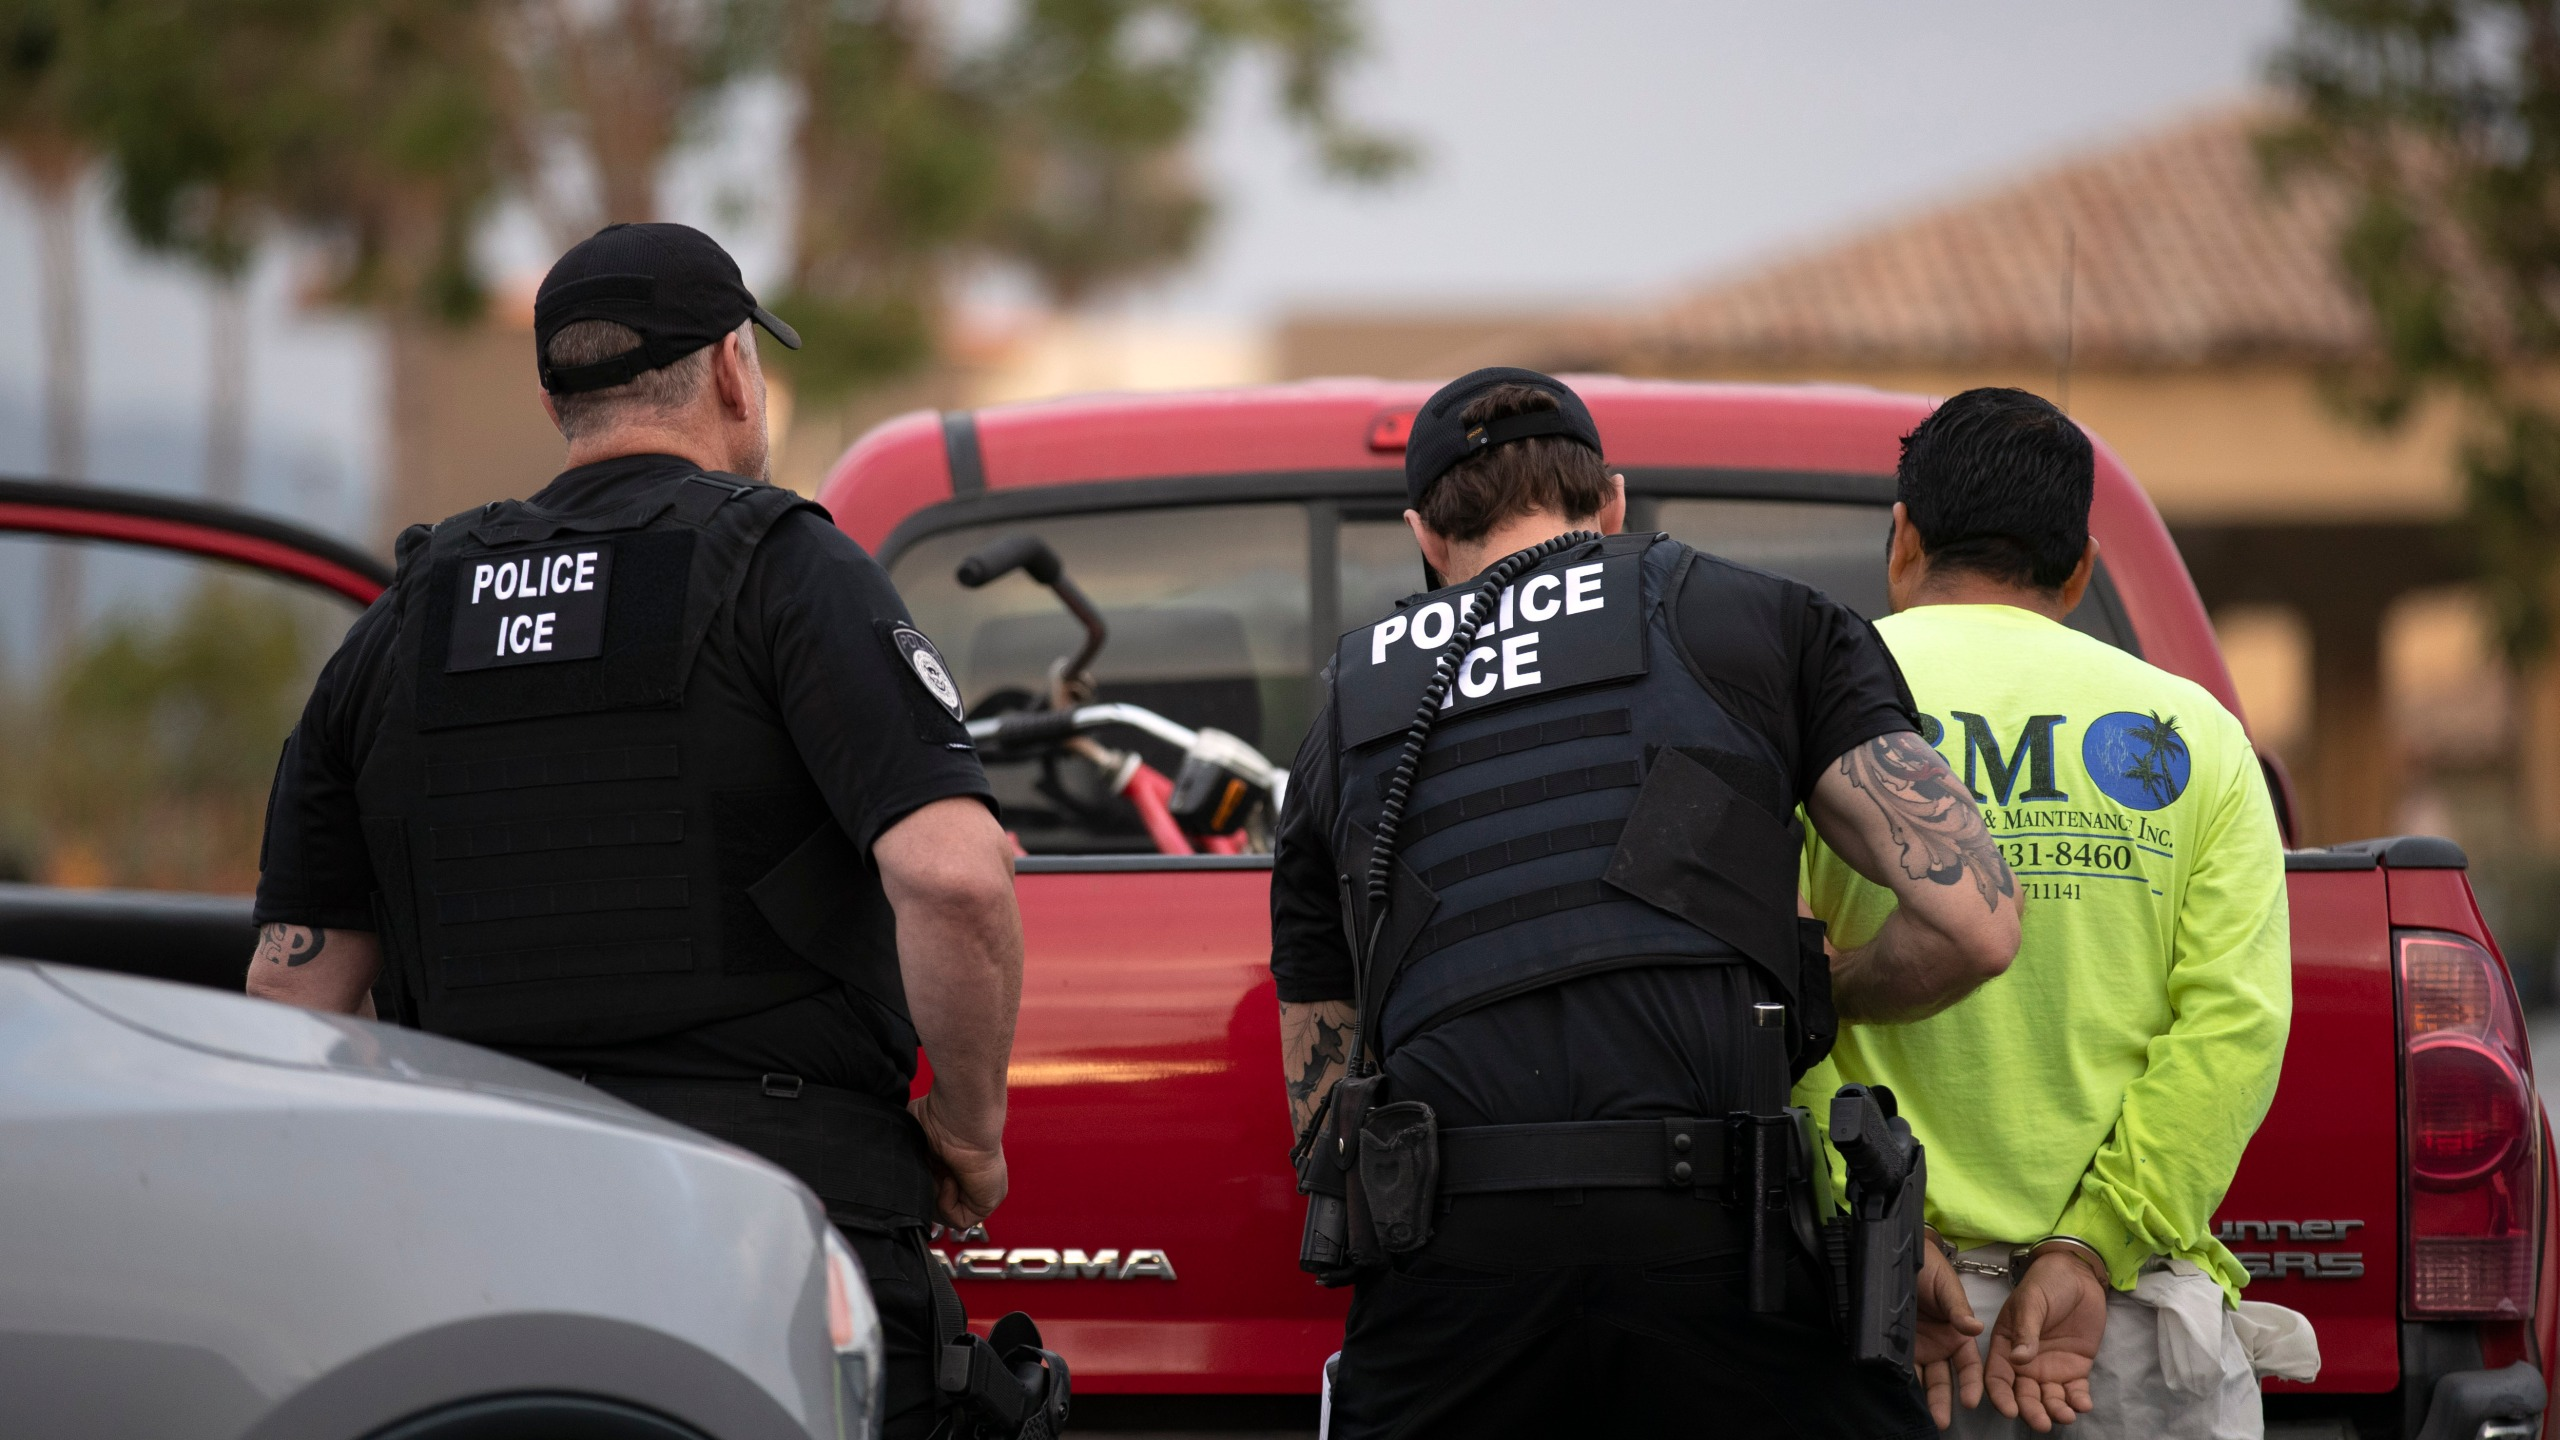 U.S. Immigration and Customs Enforcement (ICE) officers detain a man during an operation in Escondido, Calif., on July 8, 2019. (Gregory Bull / Associated Press)